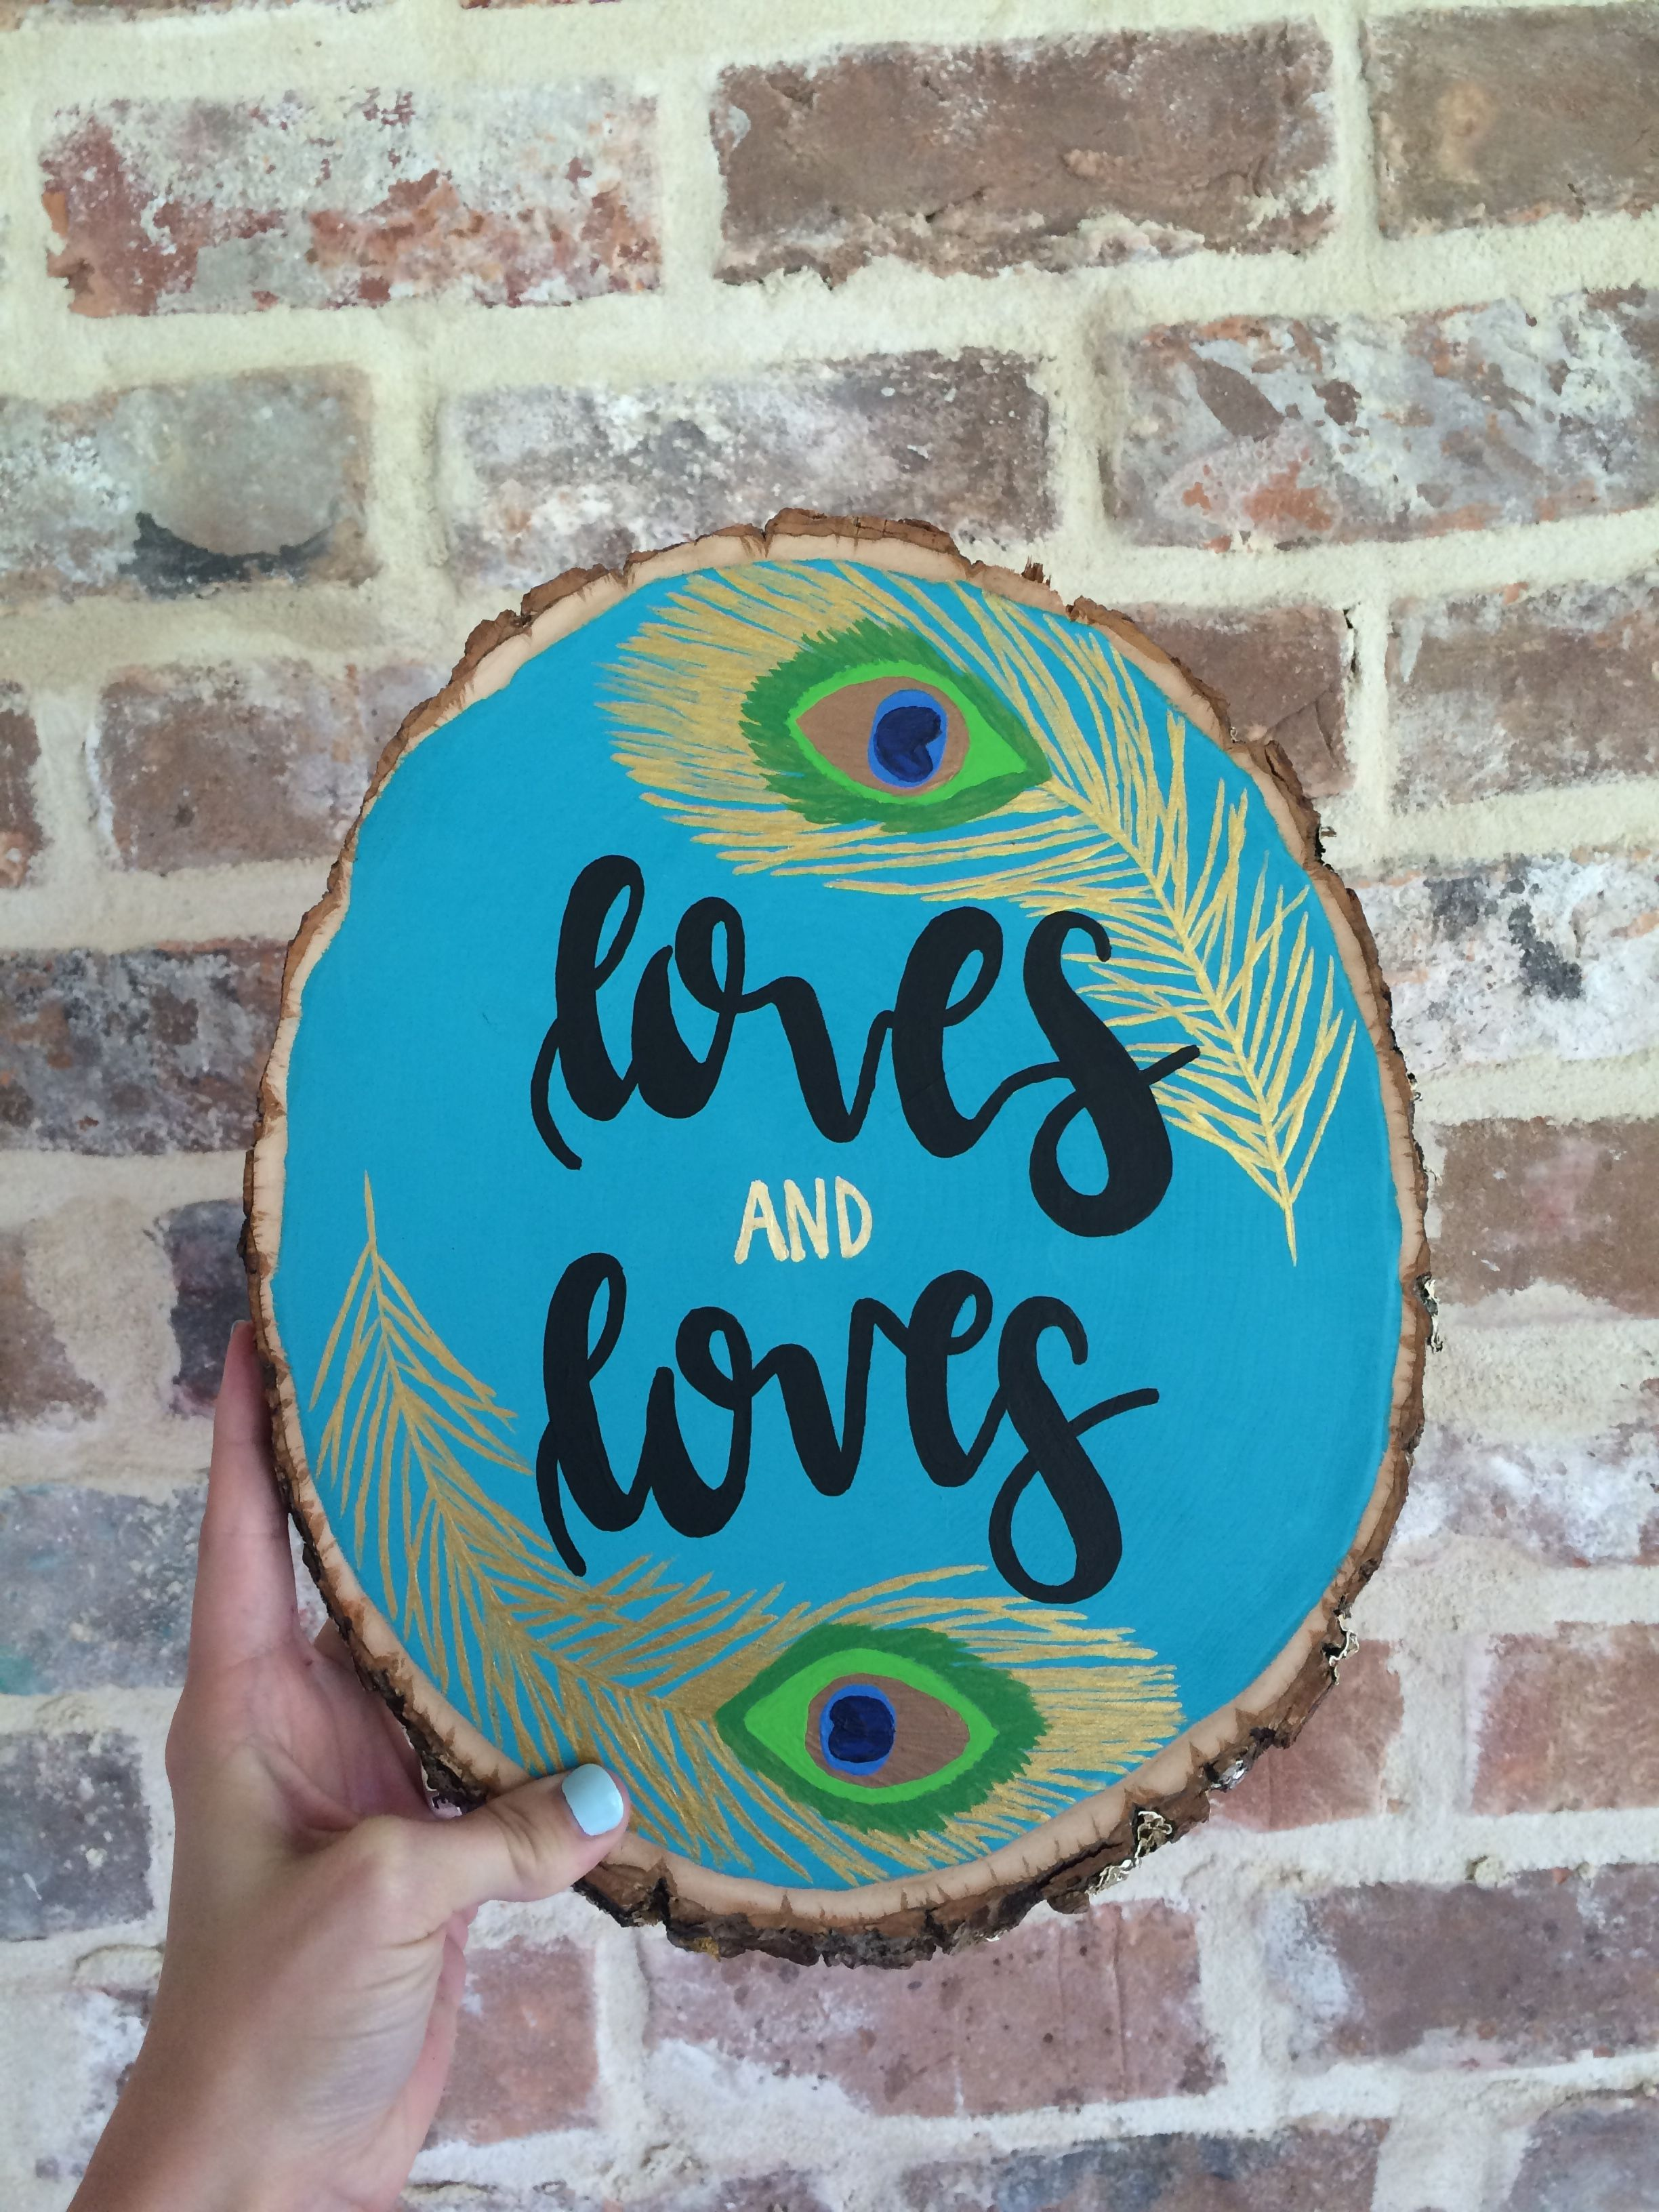 Pretty peacock feather wood slice art birthday present; nickname | by Kayla Johnson at No Place Art